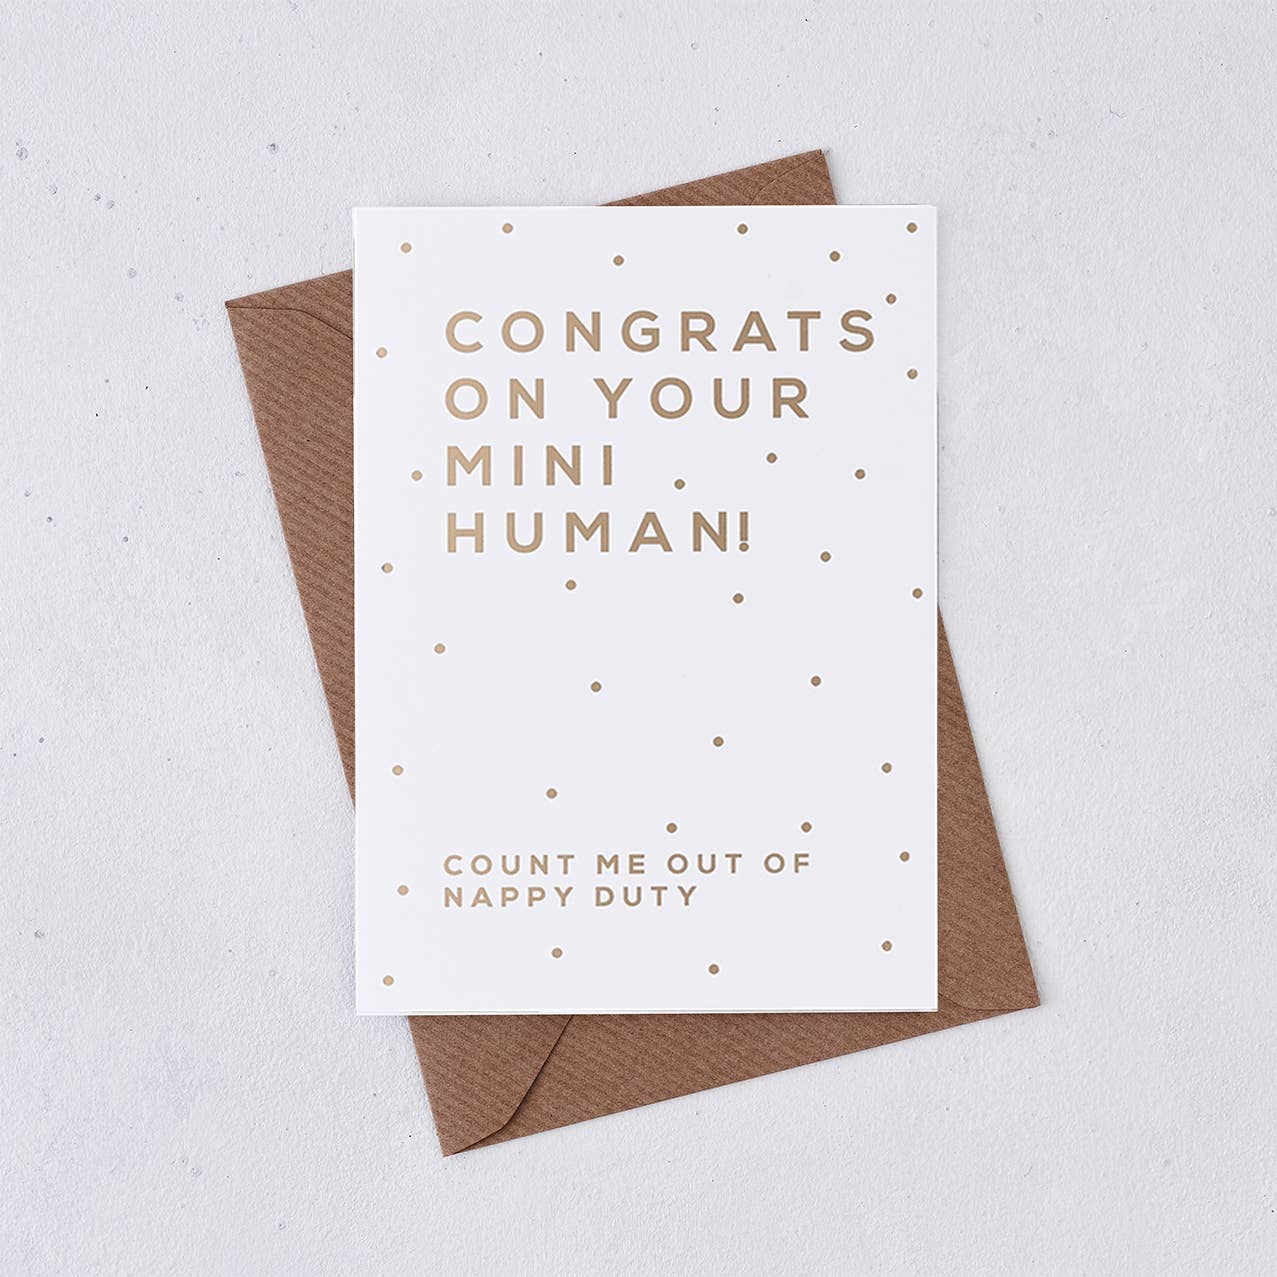 Greeting card - Congrats on your mini human